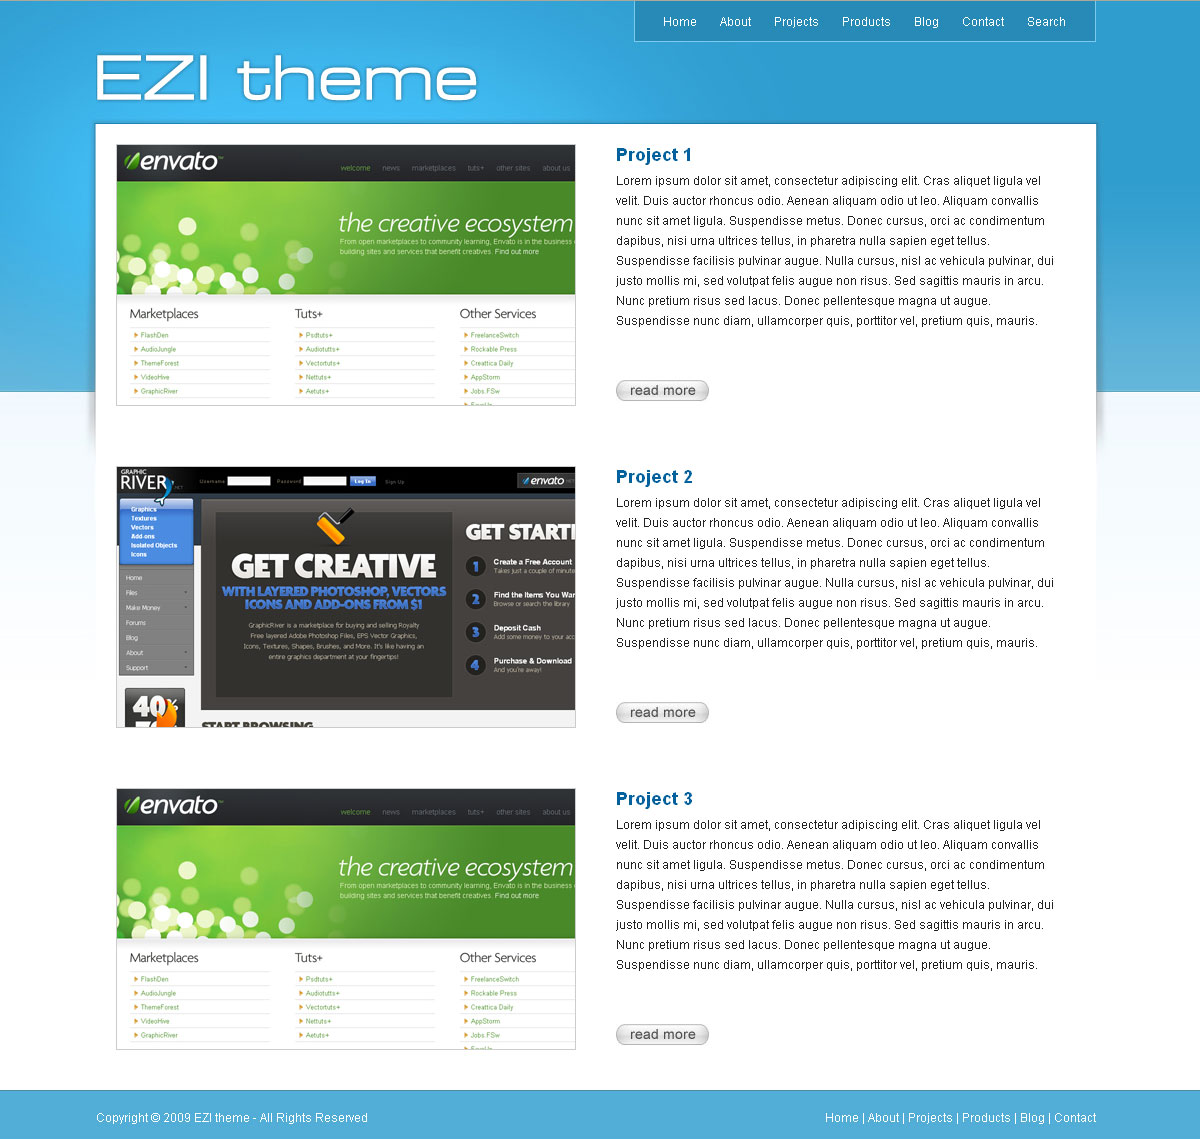 EZI theme -  EZI theme